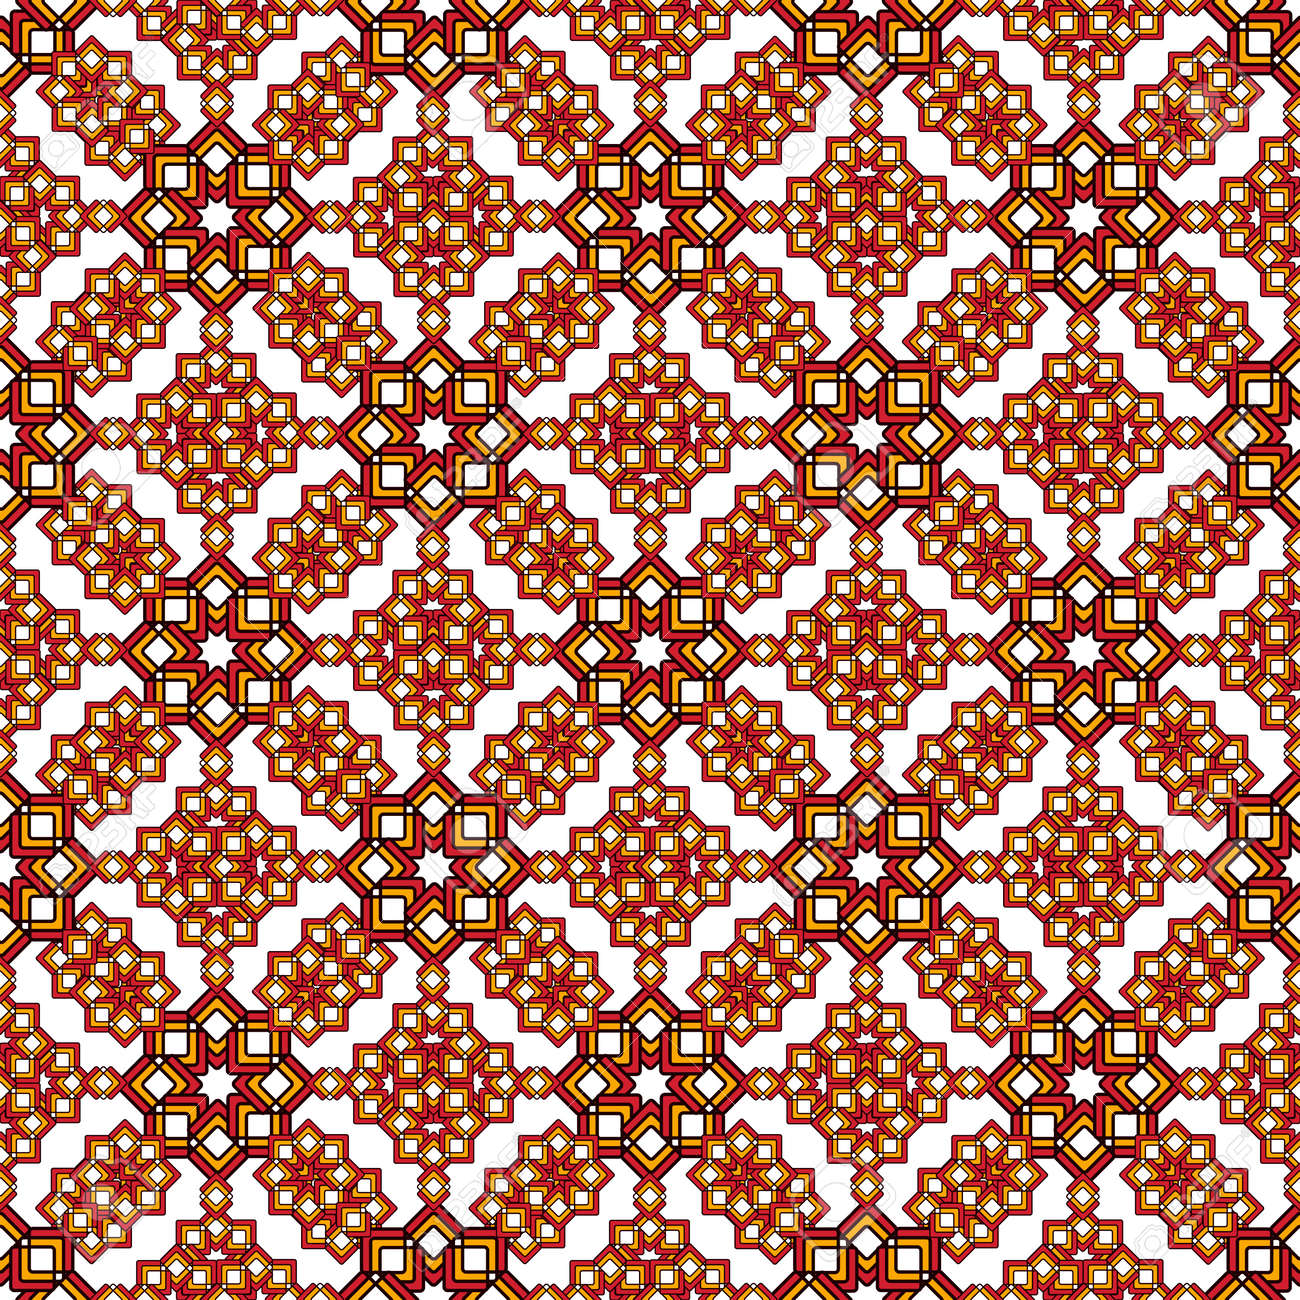 Bright oriental arabesque made of curly stars in reds and browns. Seamless pattern on a white background. Great for decorating fabrics, textiles, gift wrapping, printed matter, interiors, advertising. - 163058451